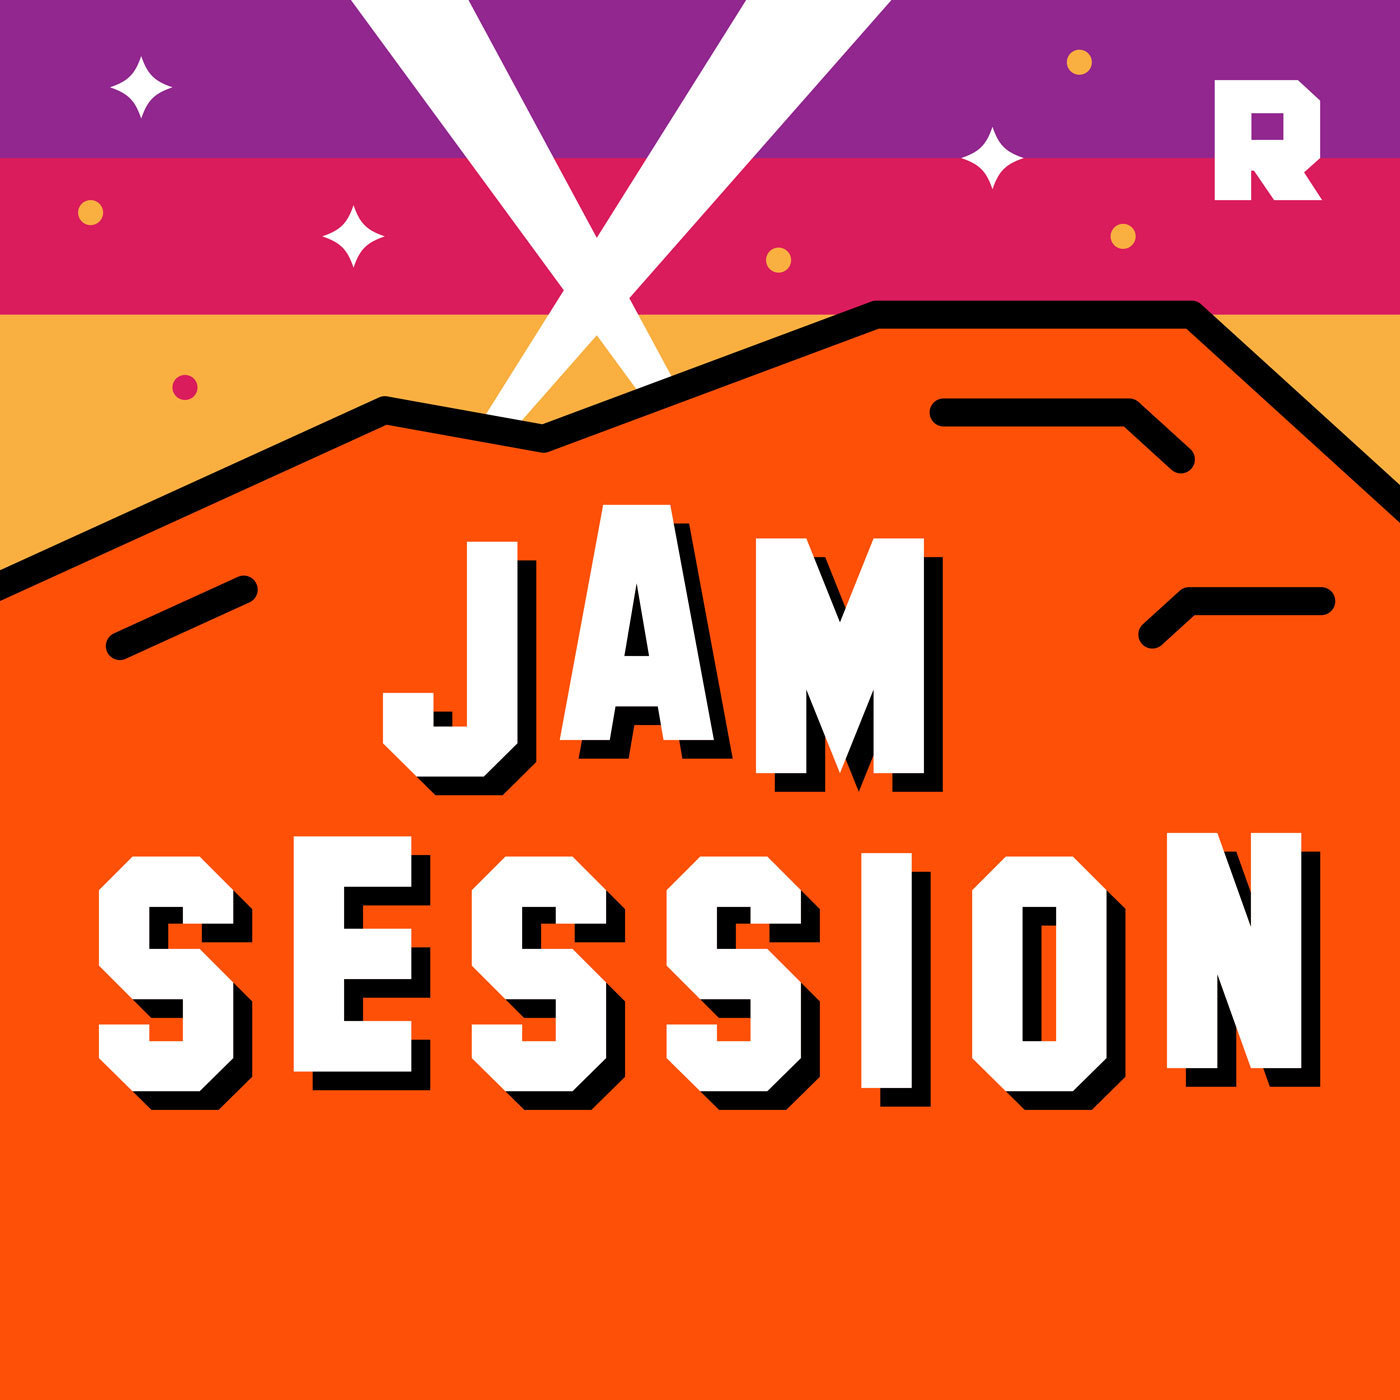 The 2019 'Jam Session' Holiday Gift Guide. Plus: Dakota Johnson on 'Ellen' and a New Relationship Straight Out of 'The Crown' | Jam Session